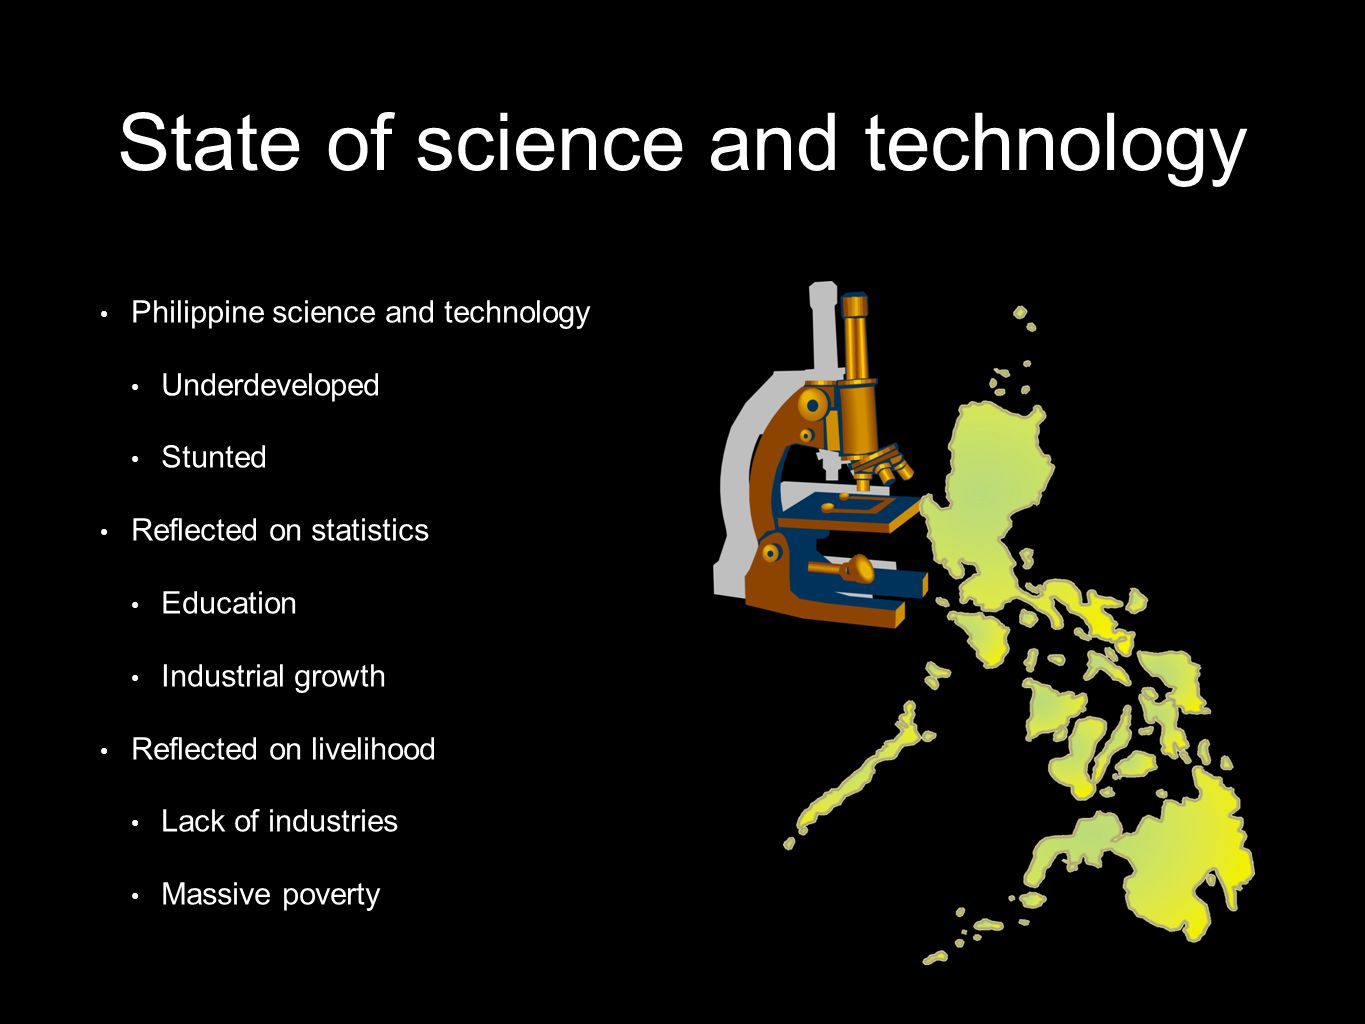 Philippine science and technology Underdeveloped Stunted Reflected on statistics Education Industrial growth Reflected on livelihood Lack of industries Massive poverty